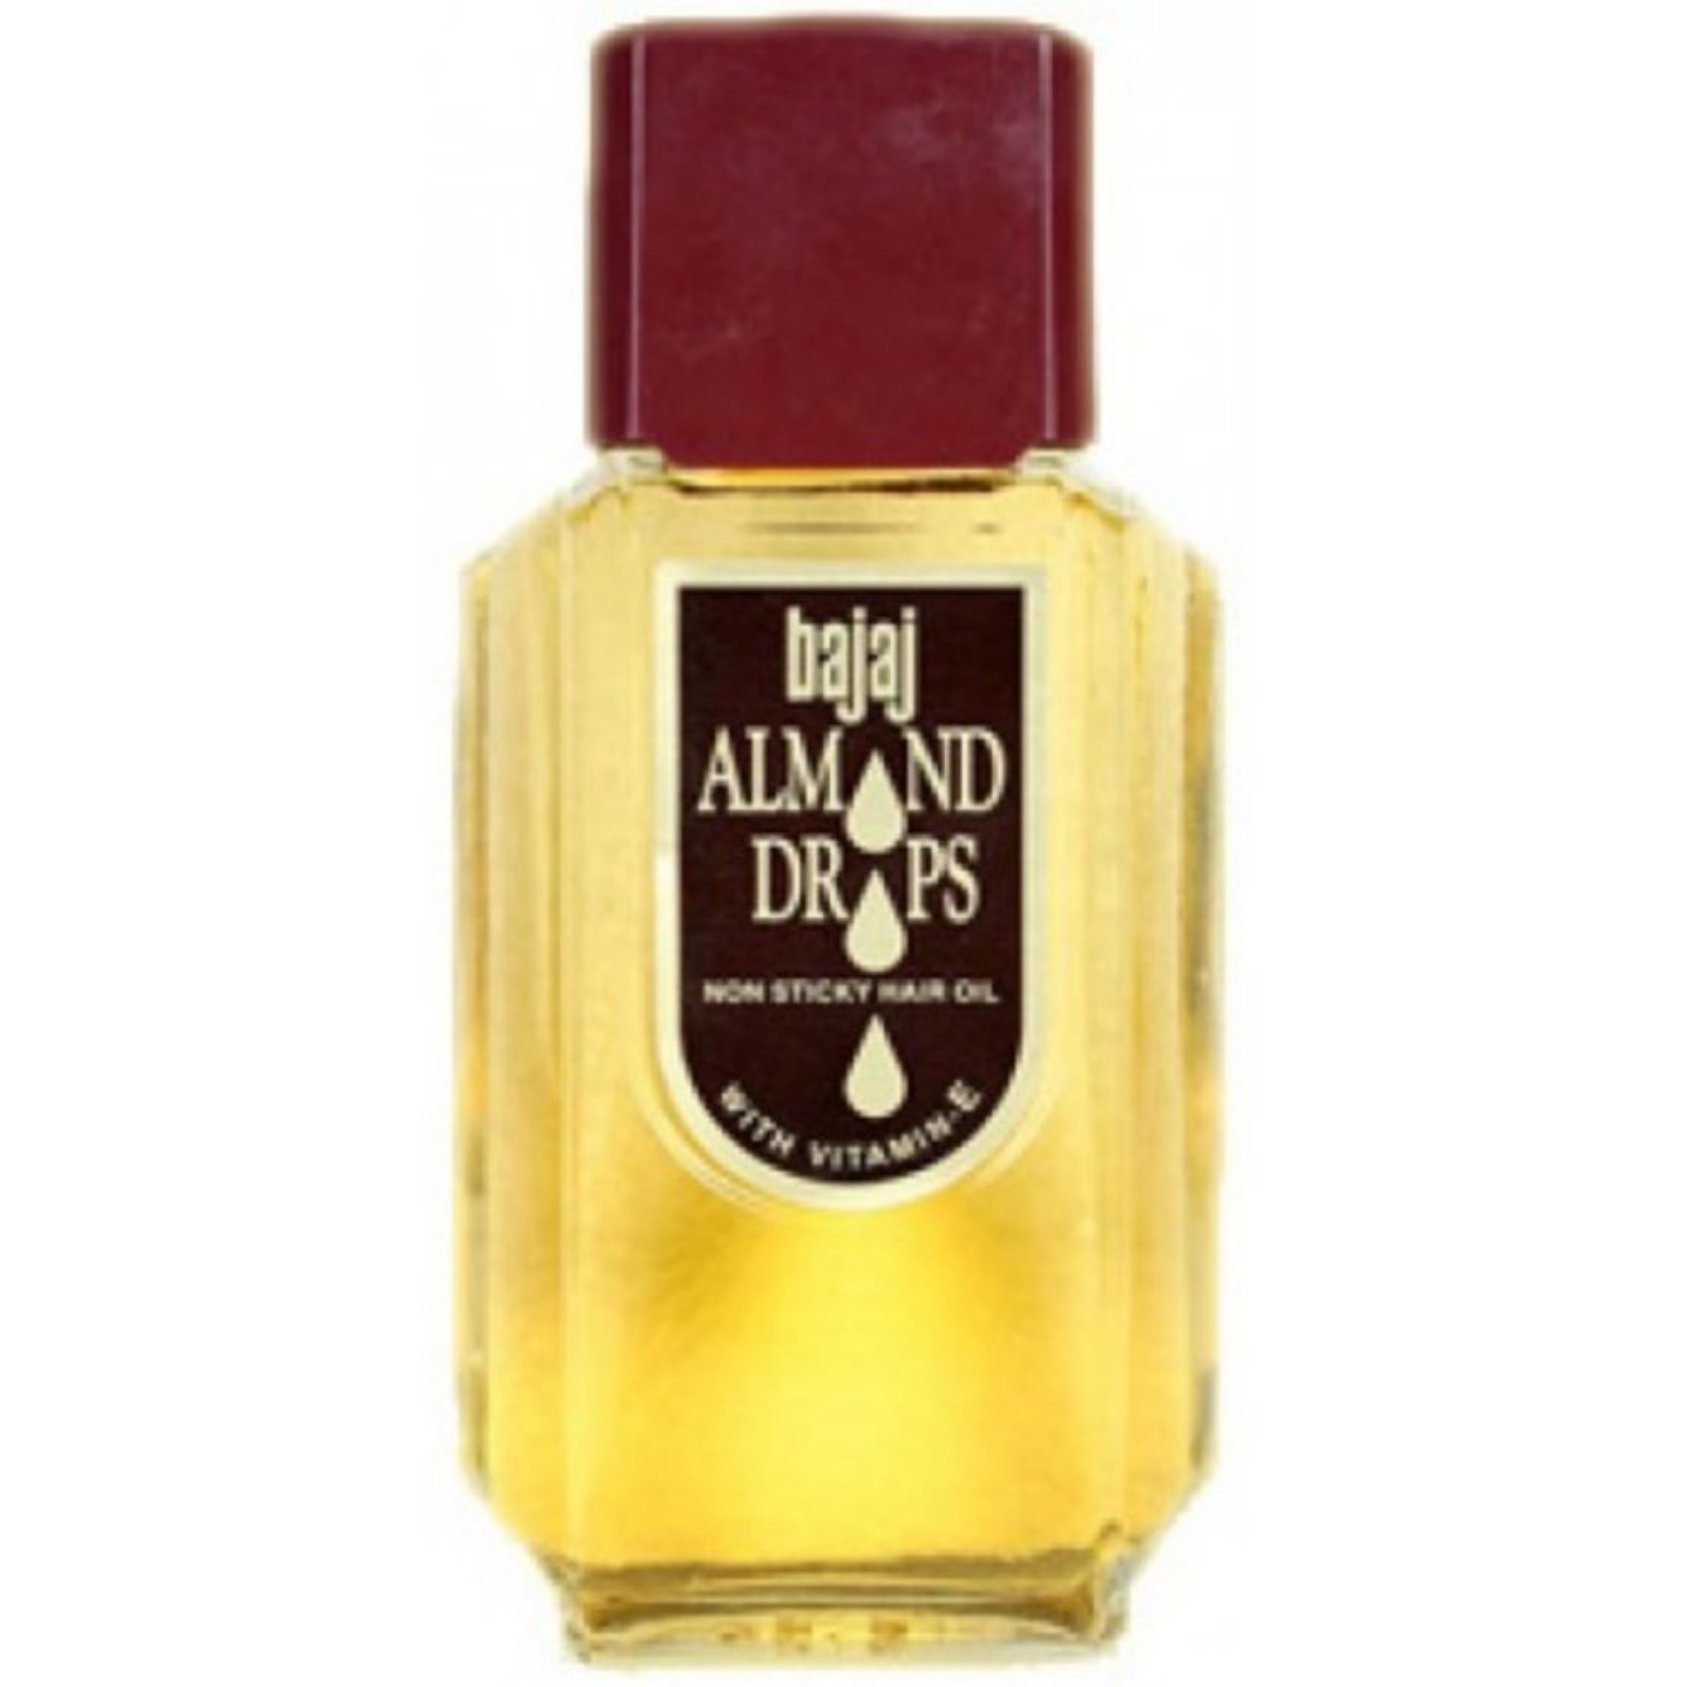 Bajaj Almond Drops Oil Image